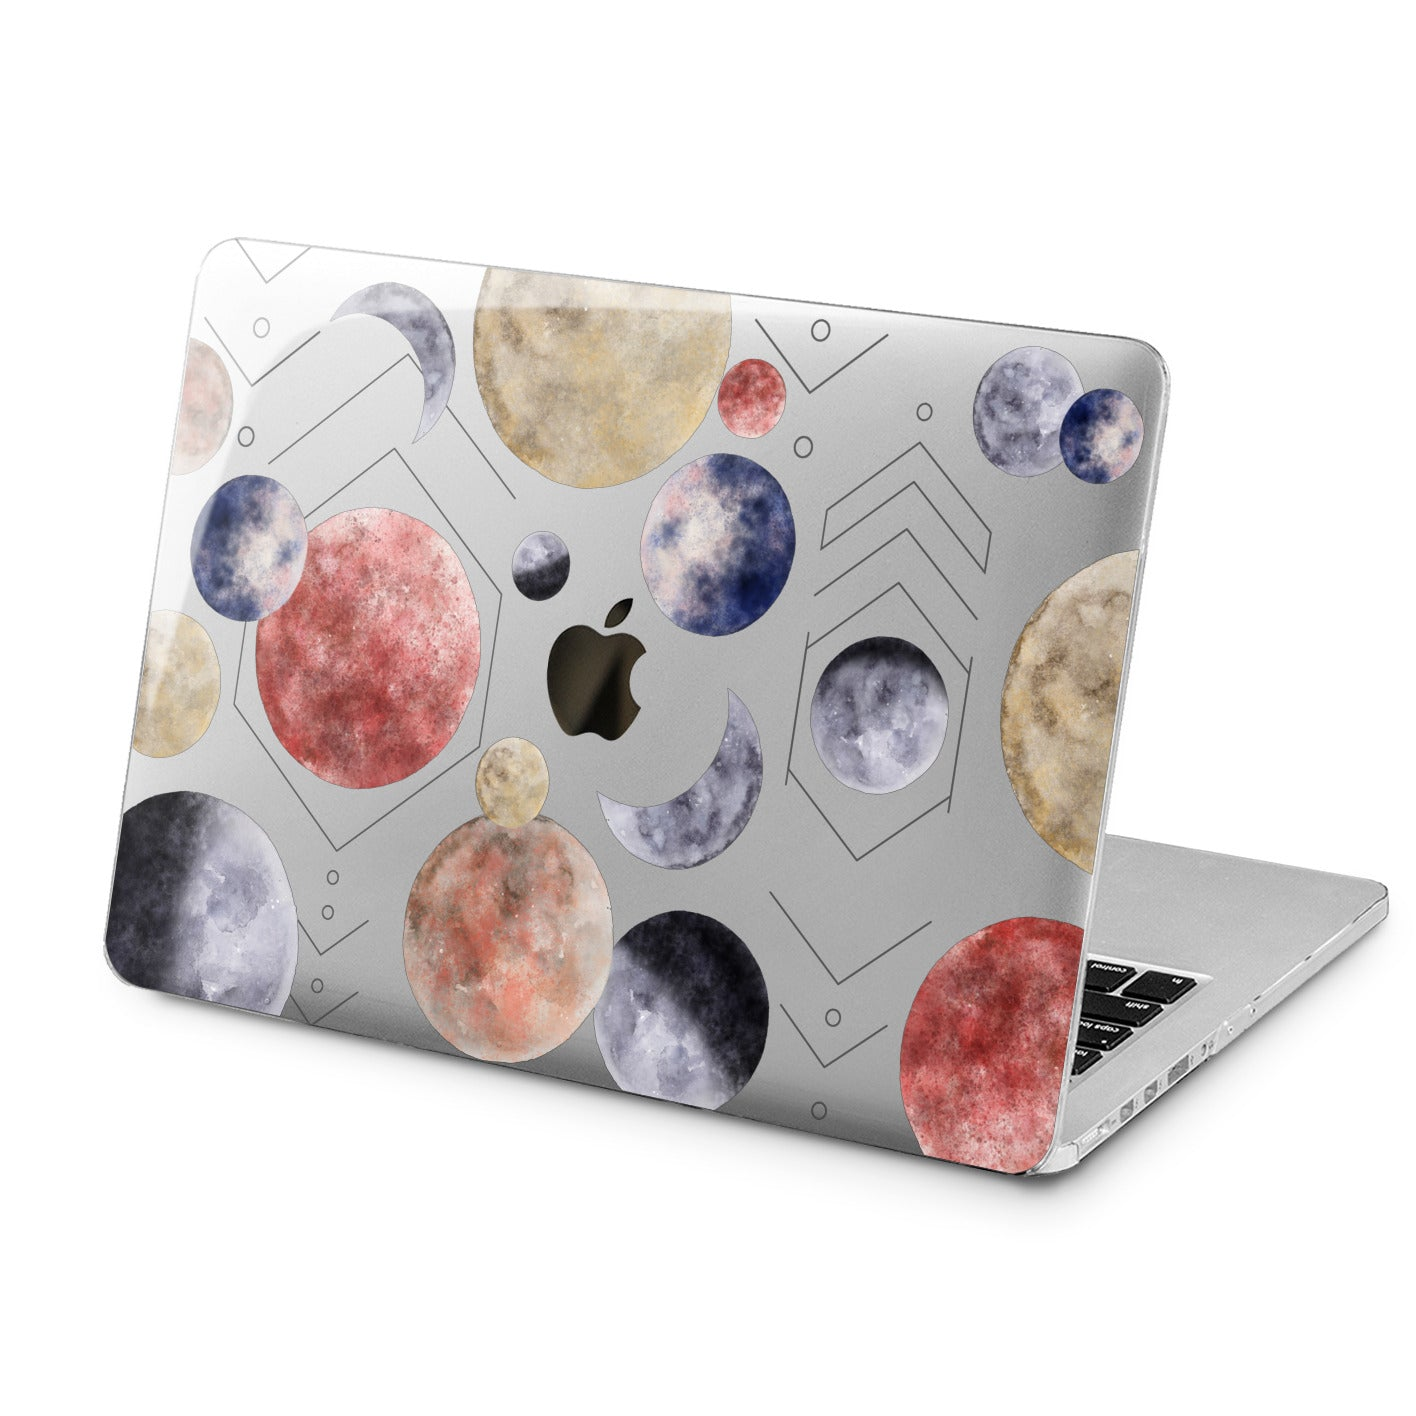 Lex Altern Lex Altern Geometric Planets Case for your Laptop Apple Macbook.